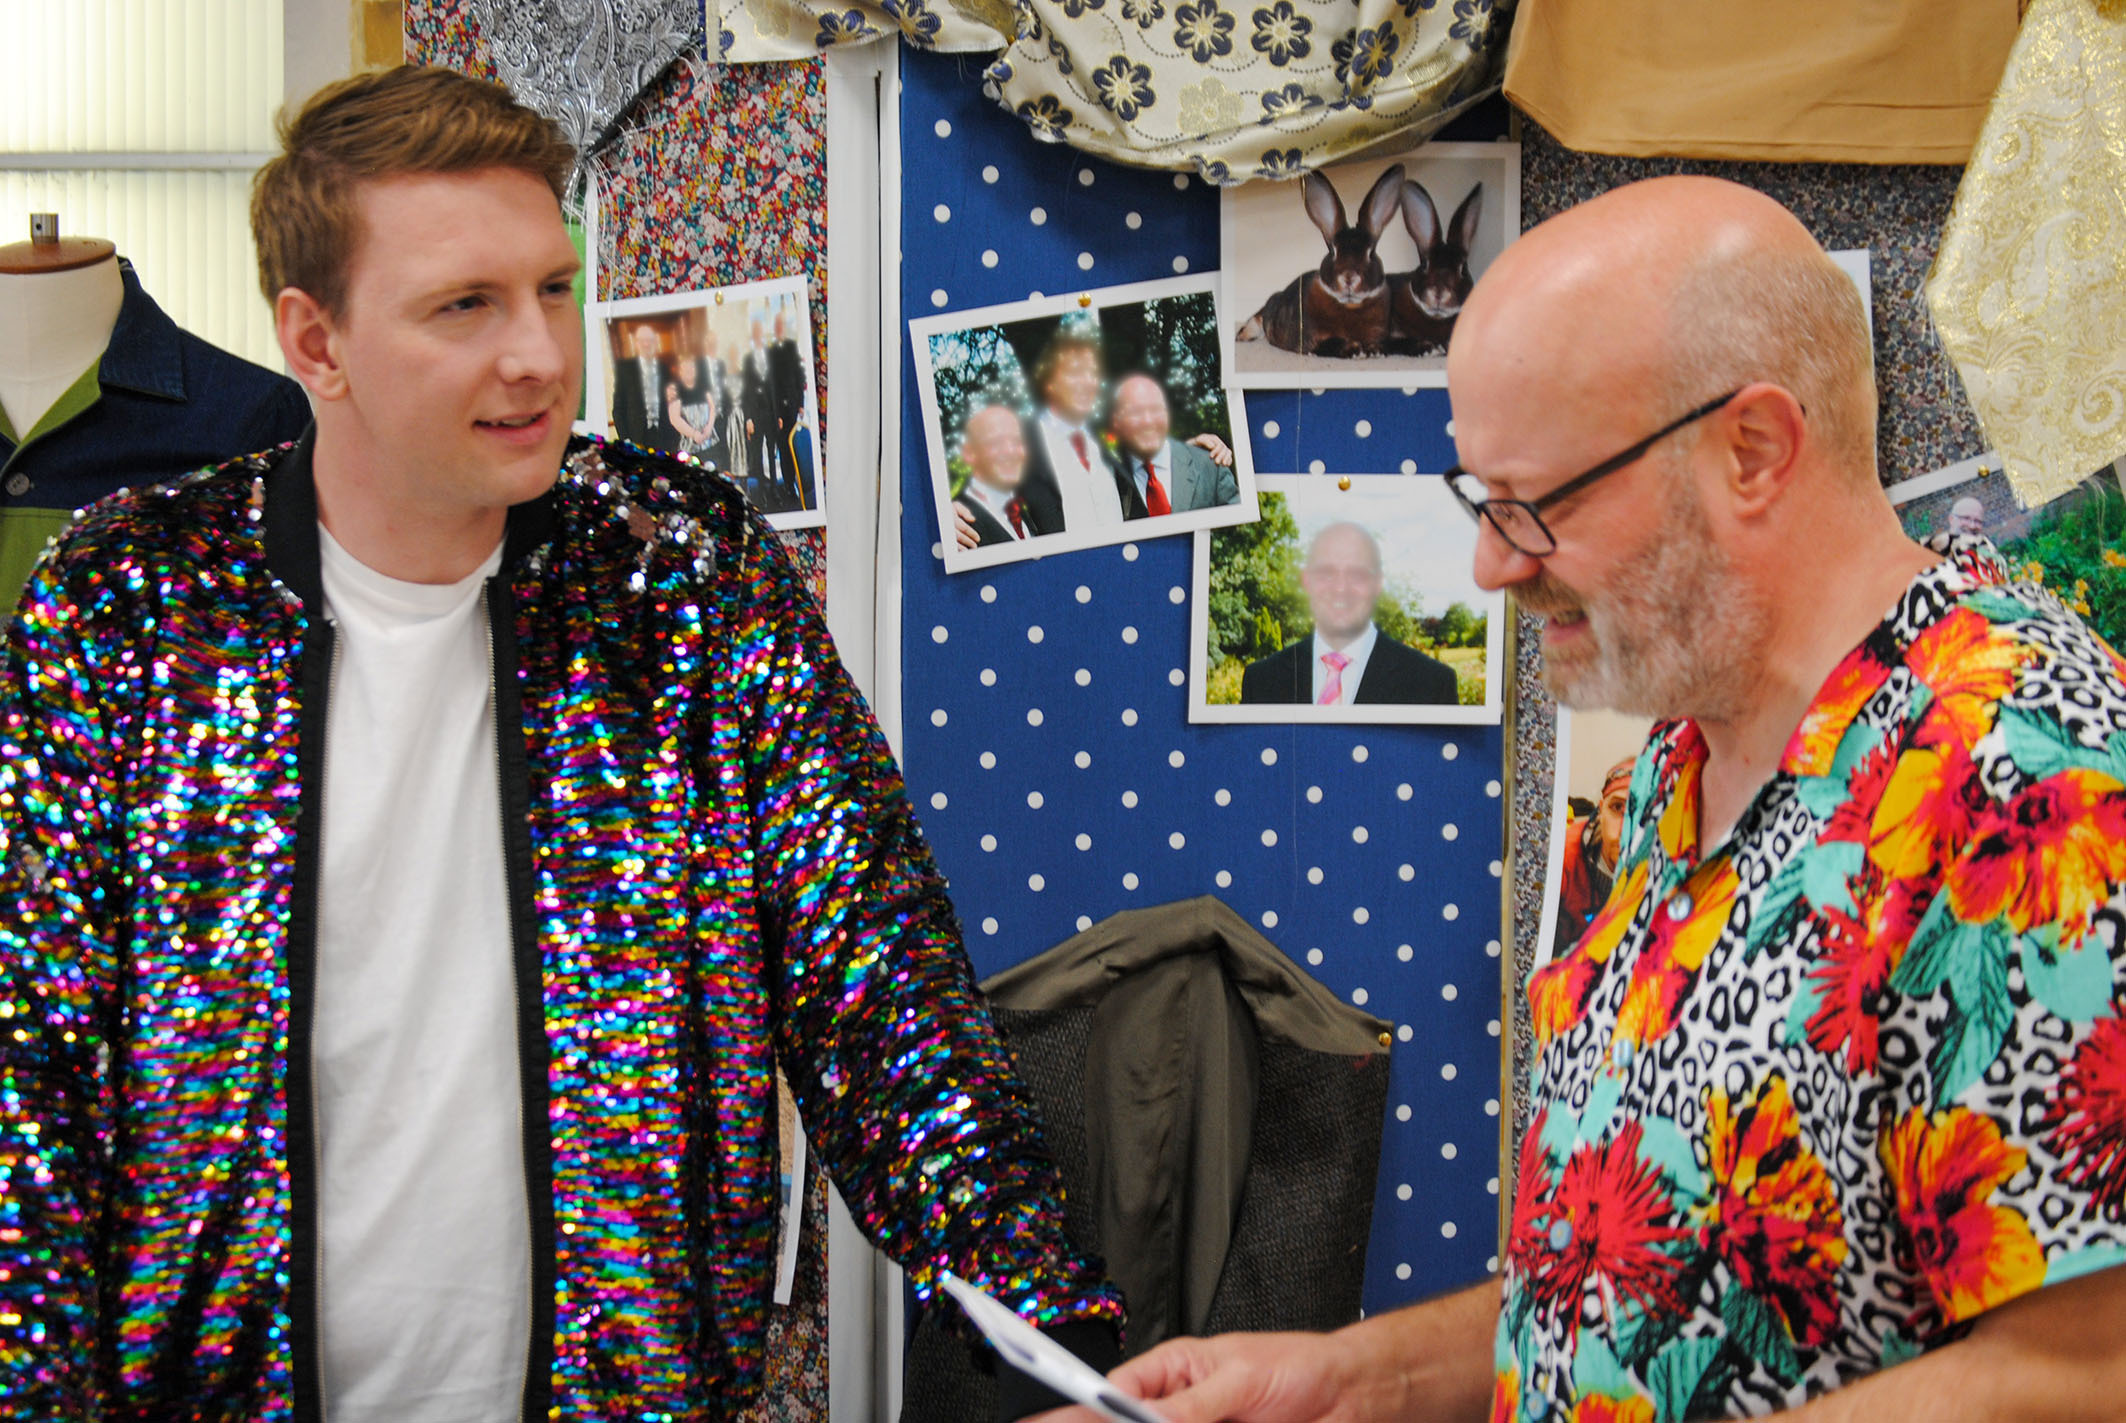 The Great British Sewing Bee: Joe Lycett and Andrew